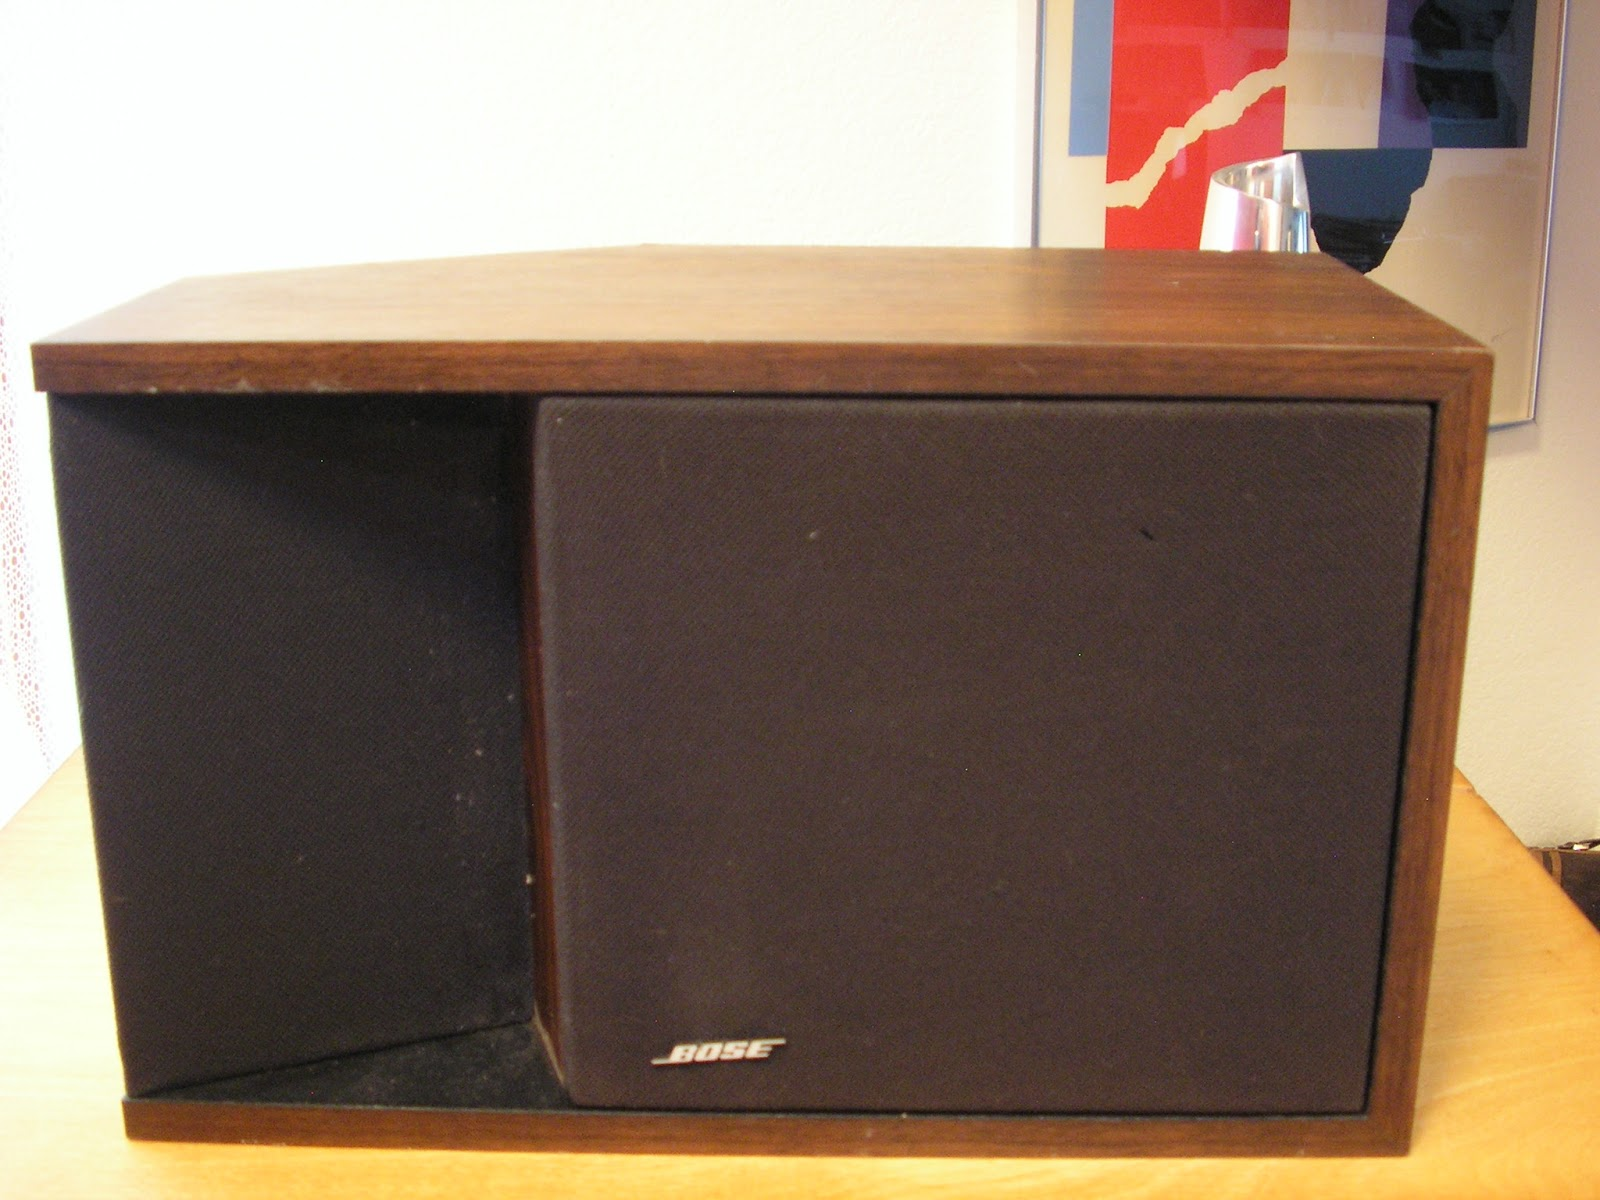 Bose 201 Series 2 speakers